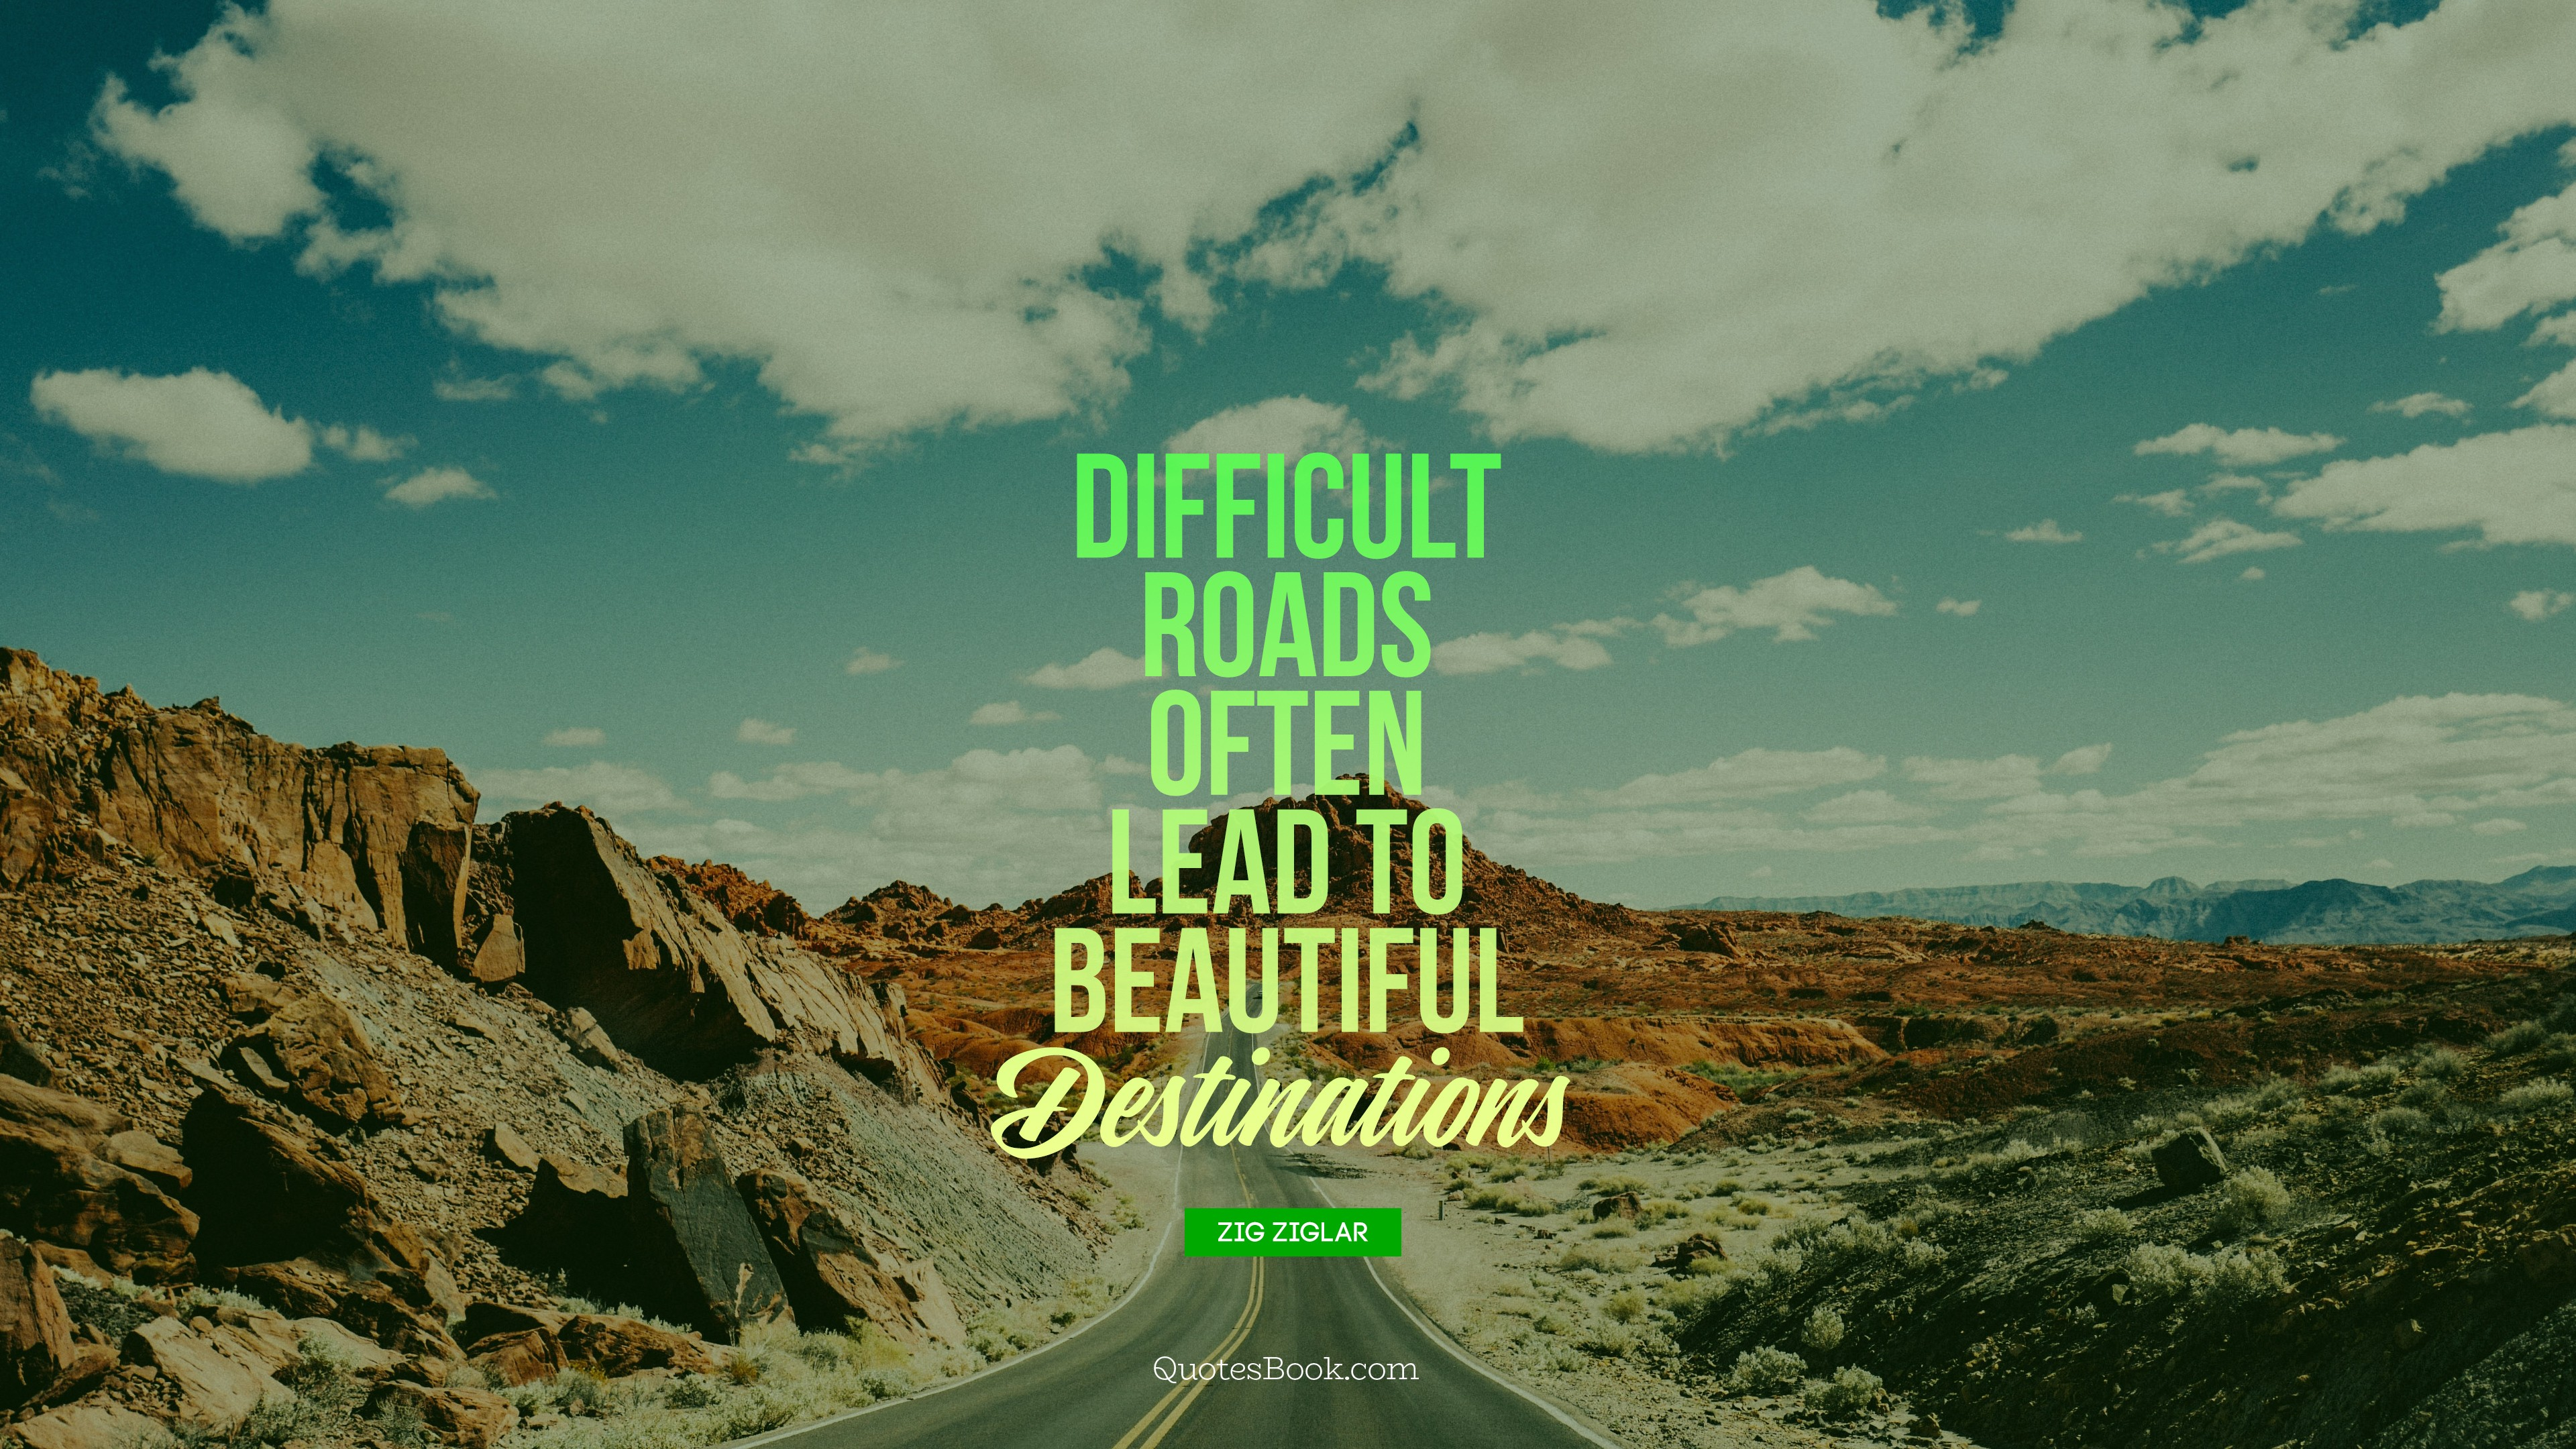 Difficult roads often lead to beautiful destinations ...